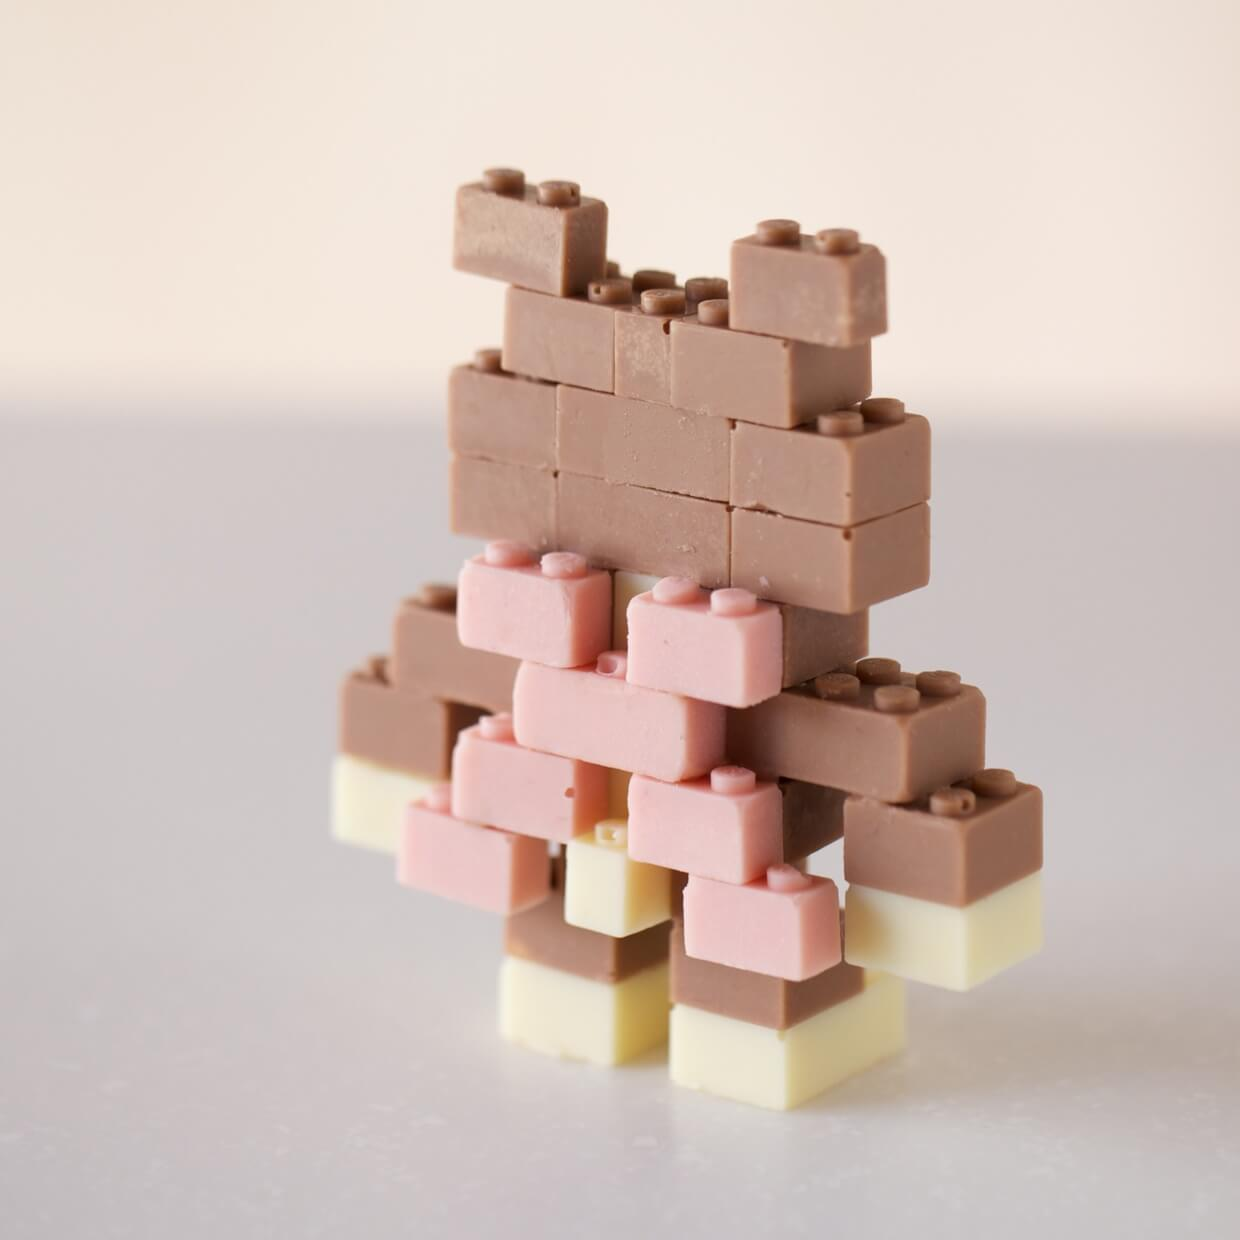 chocolate lego bricks 5 (1)